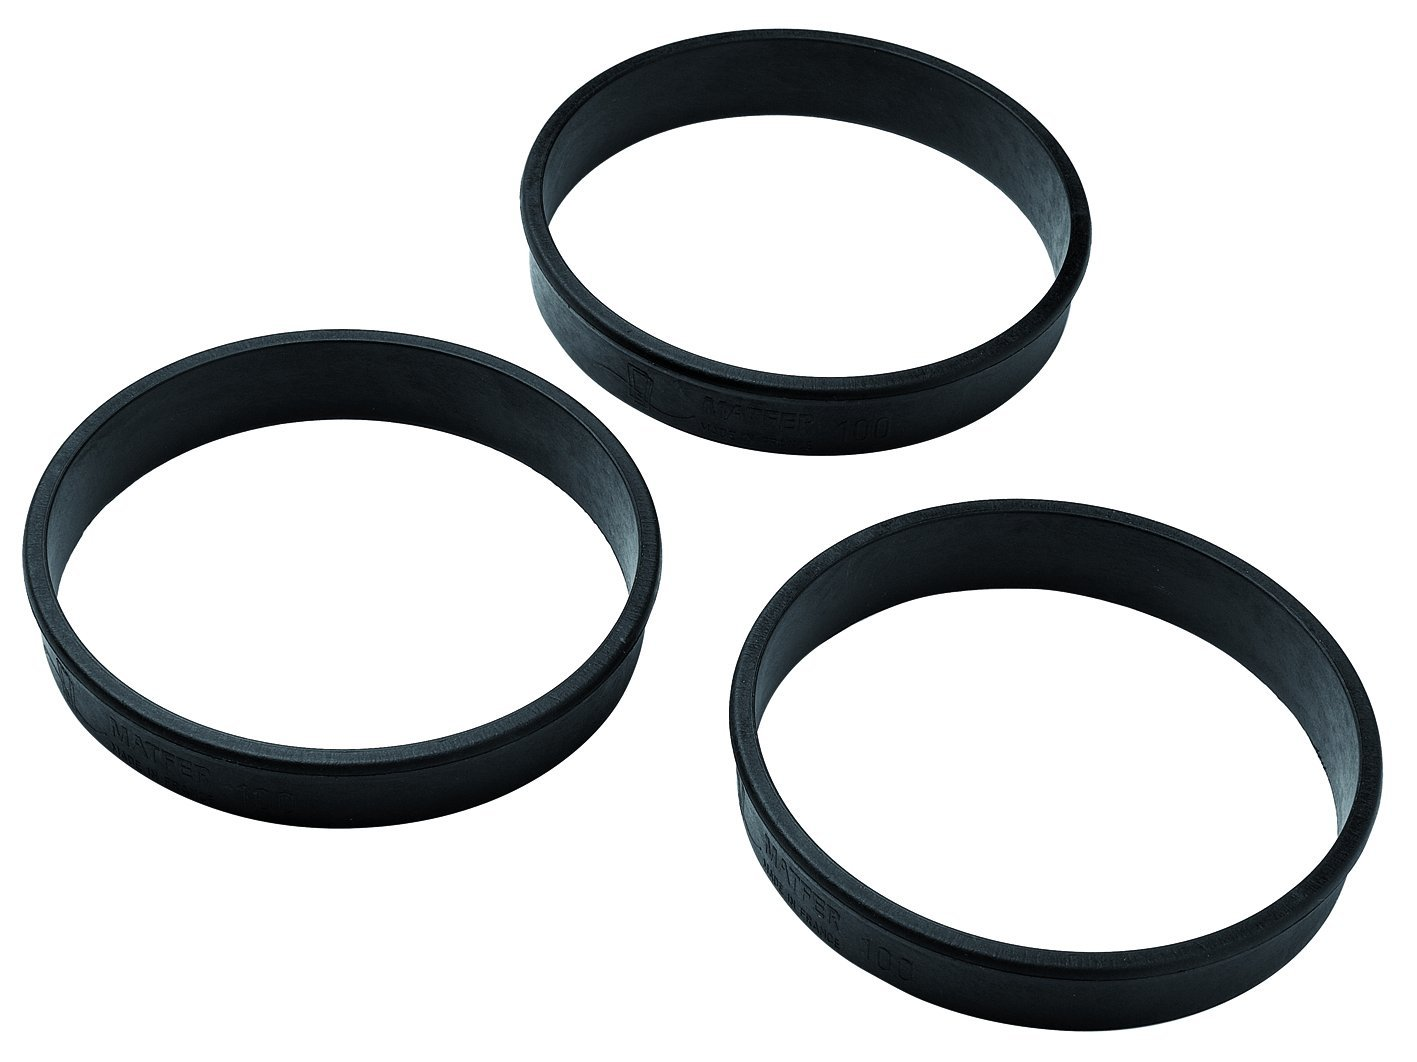 Matfer Bourgeat 346705 Exoglass Tart Rings, 3-1/6-Inch, Black by Matfer Bourgeat